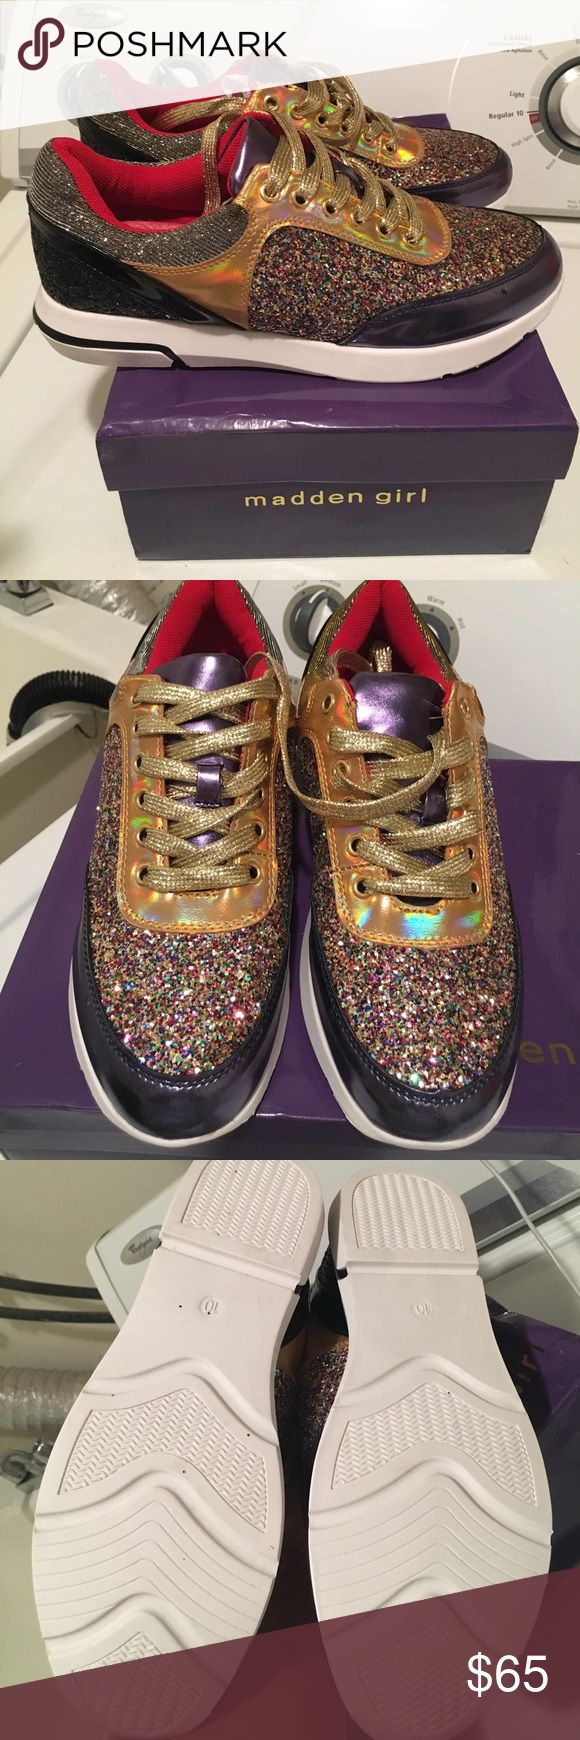 New Madden Girl shoes Brought these cuties but decided these are a little to much sparkles for me lol!! They are new no wear comes with box!! Steve Madden Shoes Athletic Shoes